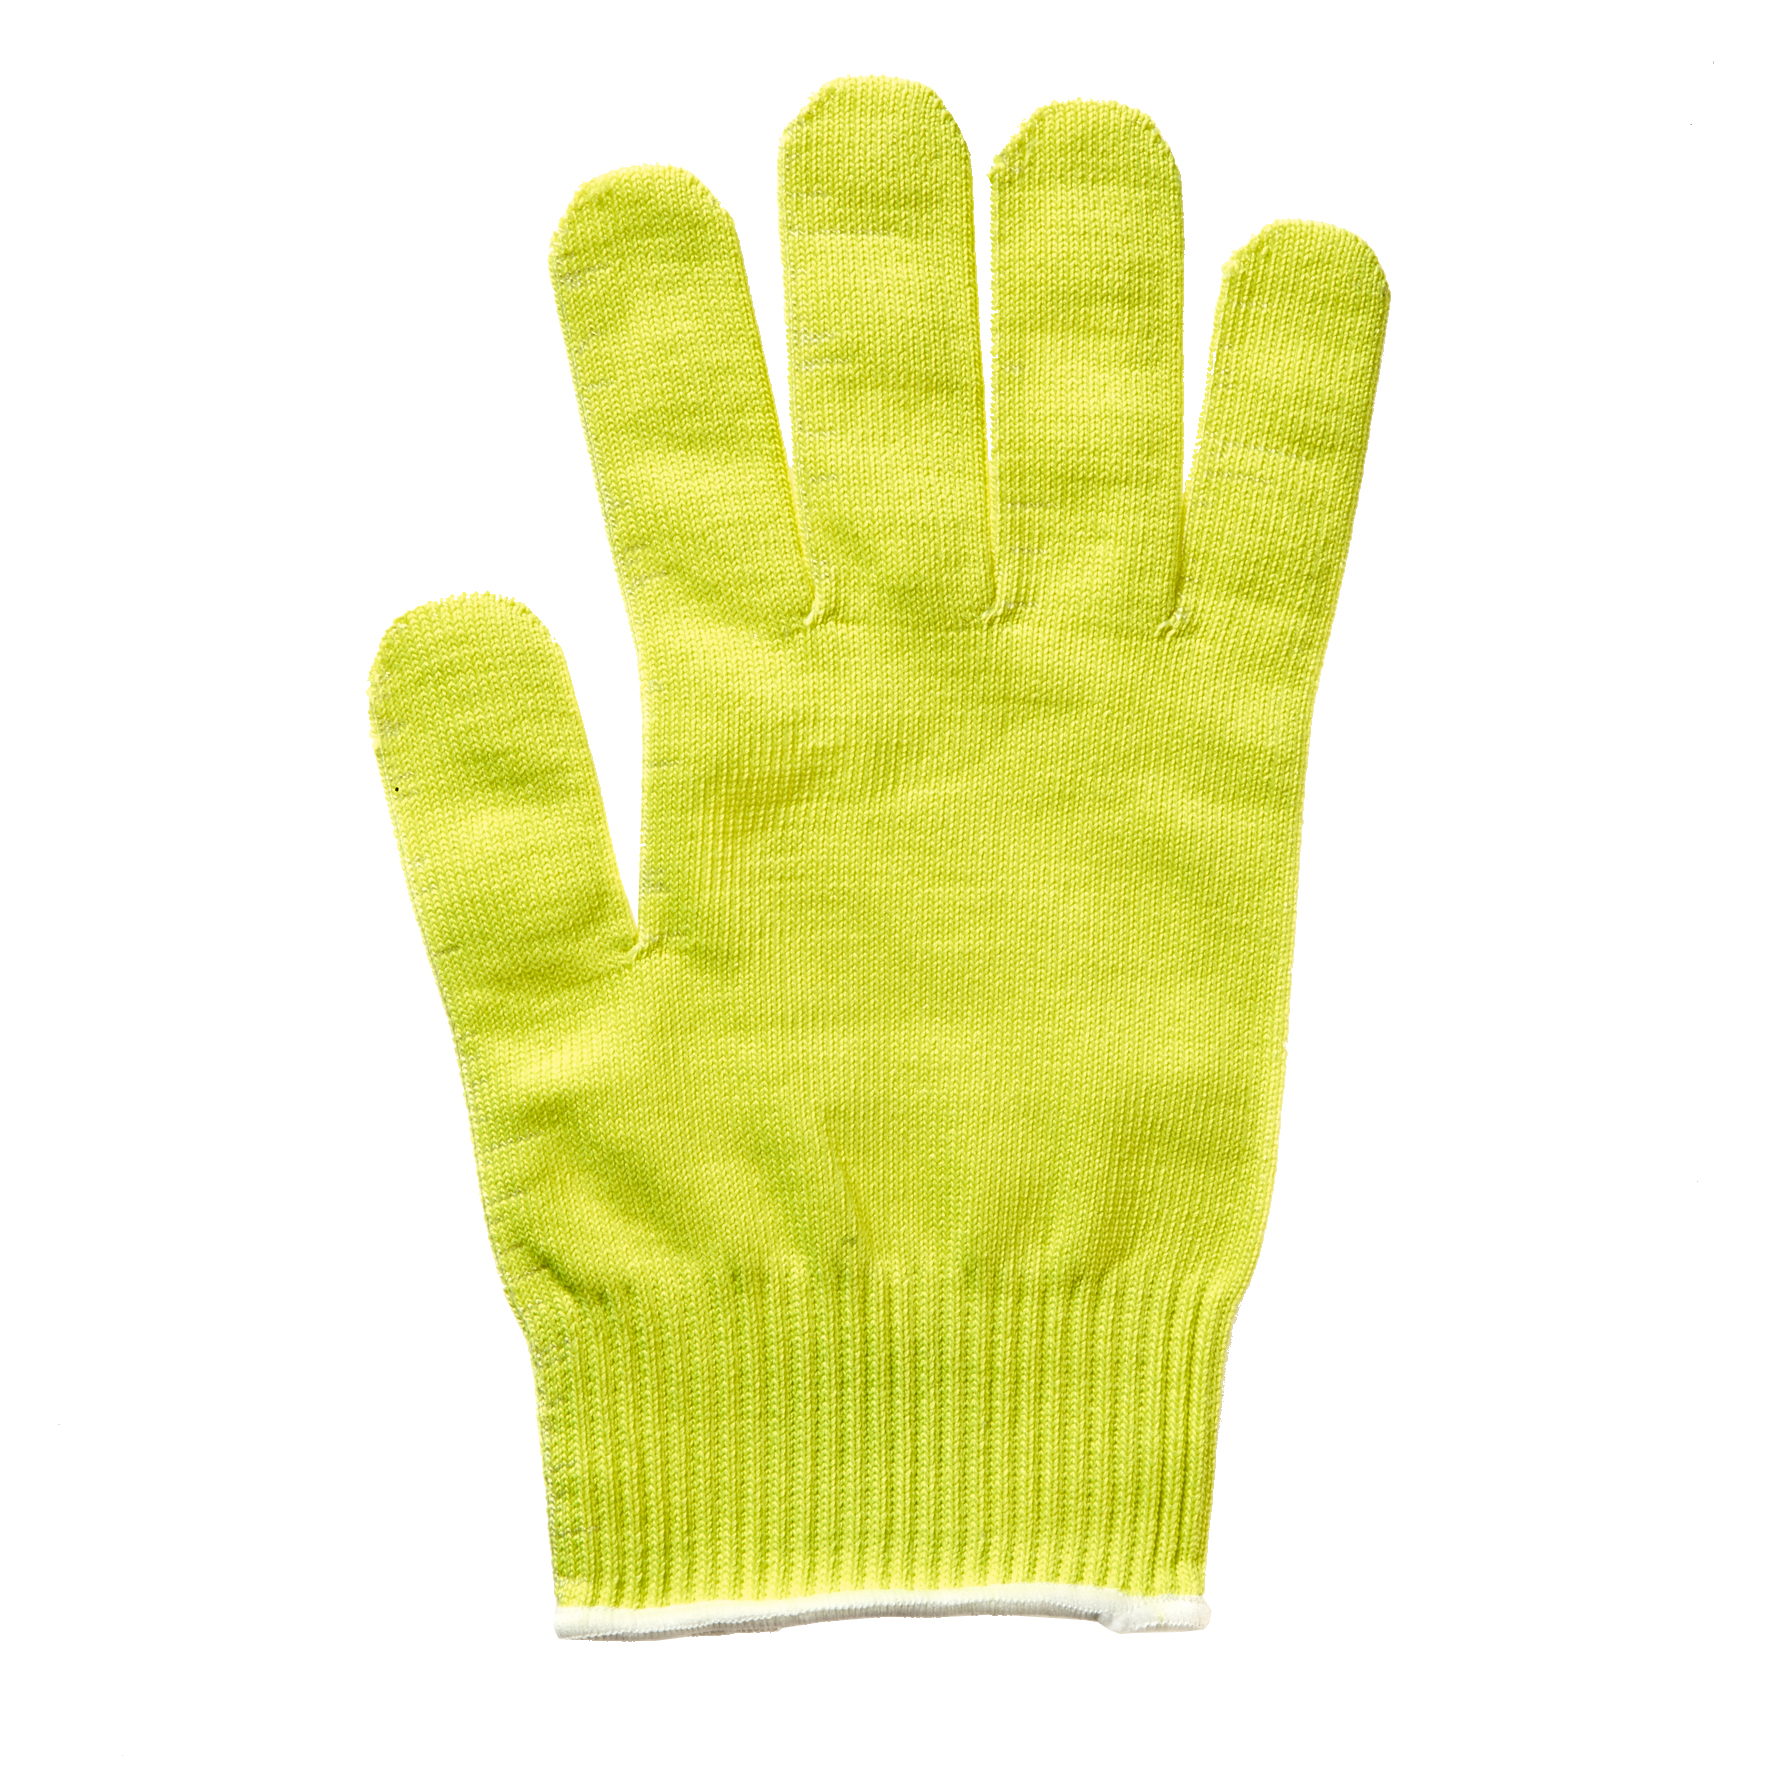 Mercer Culinary M33415YLL glove, cut resistant